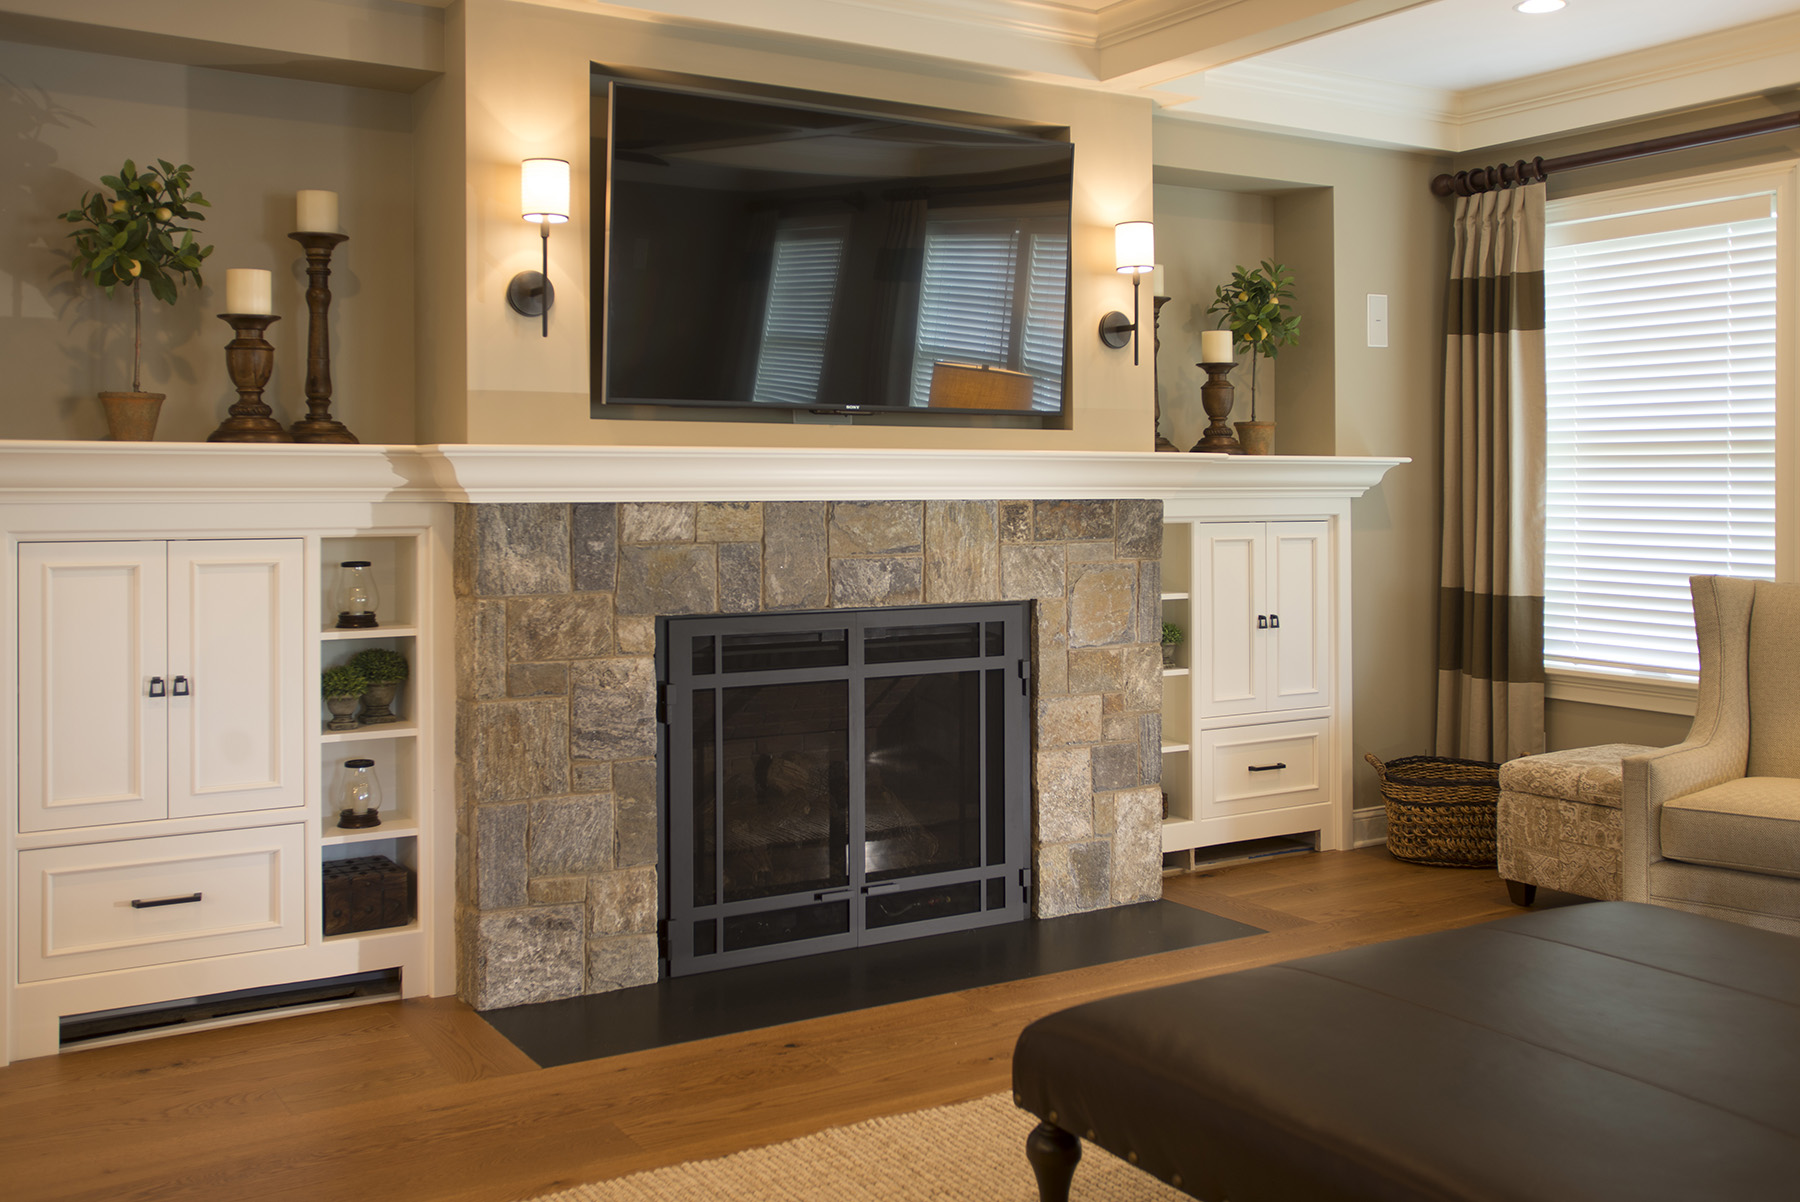 stone fireplace, tv above